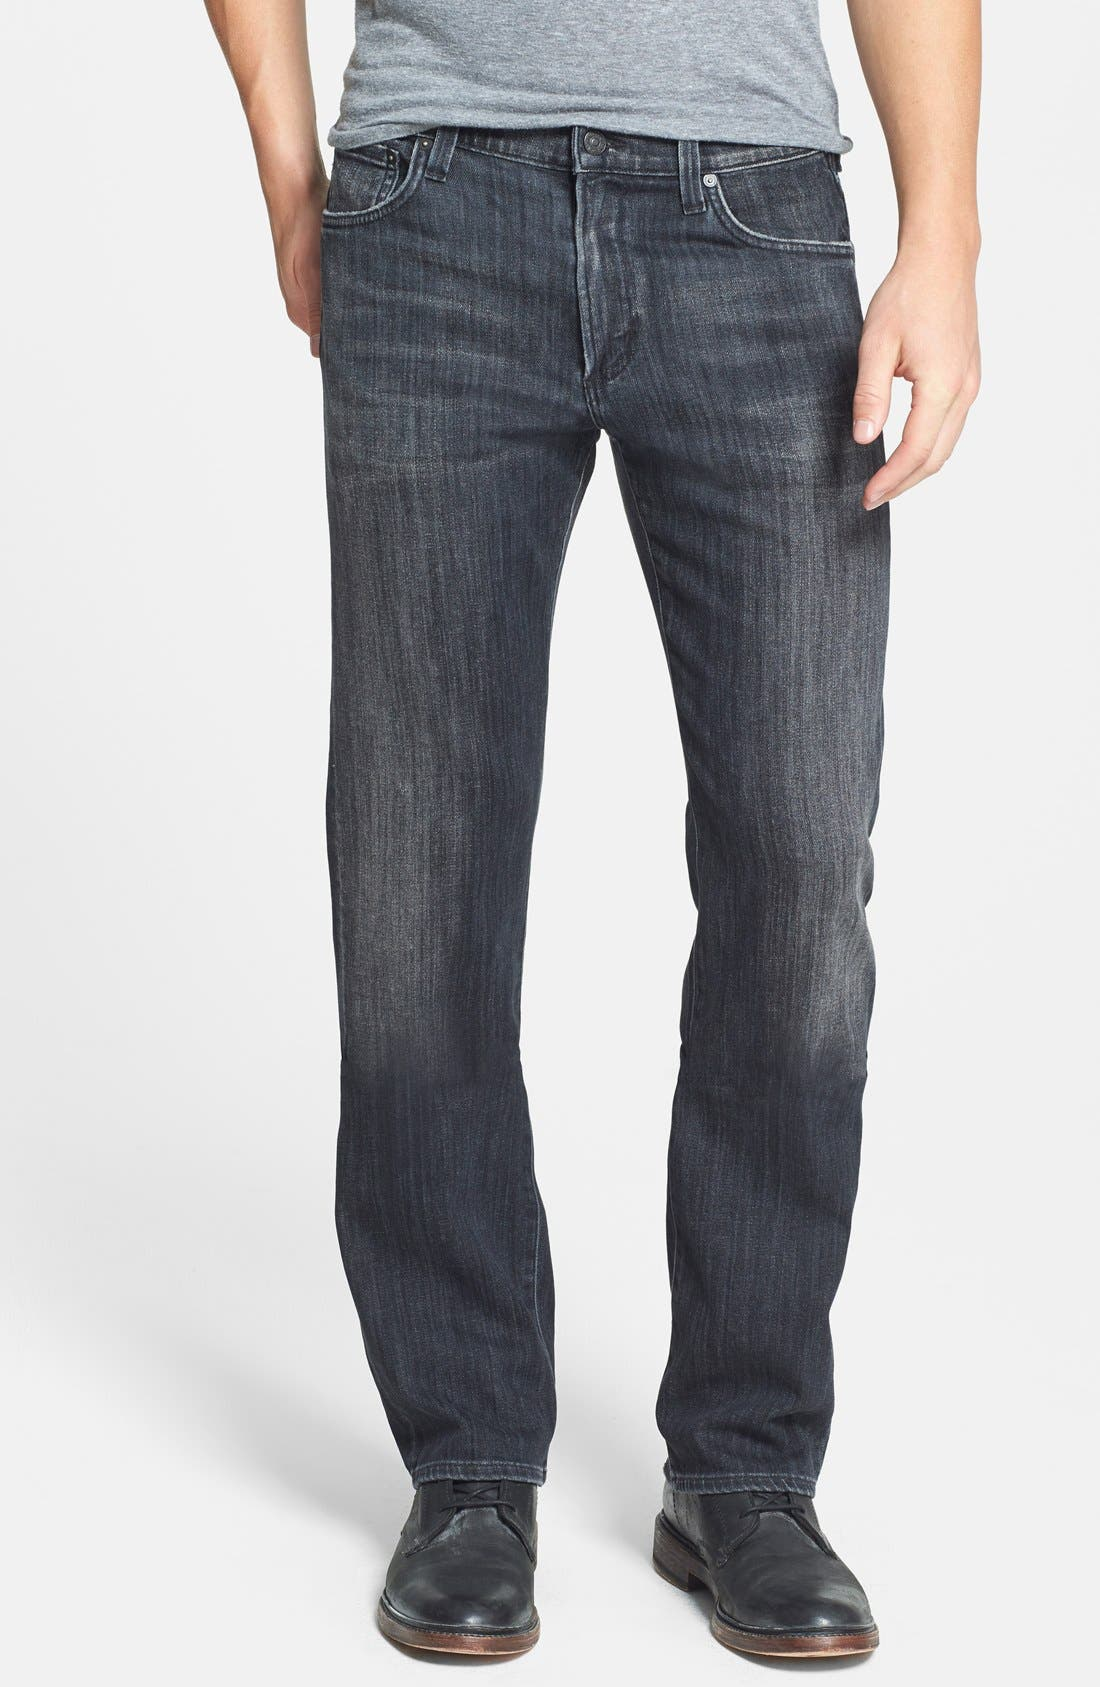 'Sid' Classic Straight Leg Jeans,                         Main,                         color, Crow